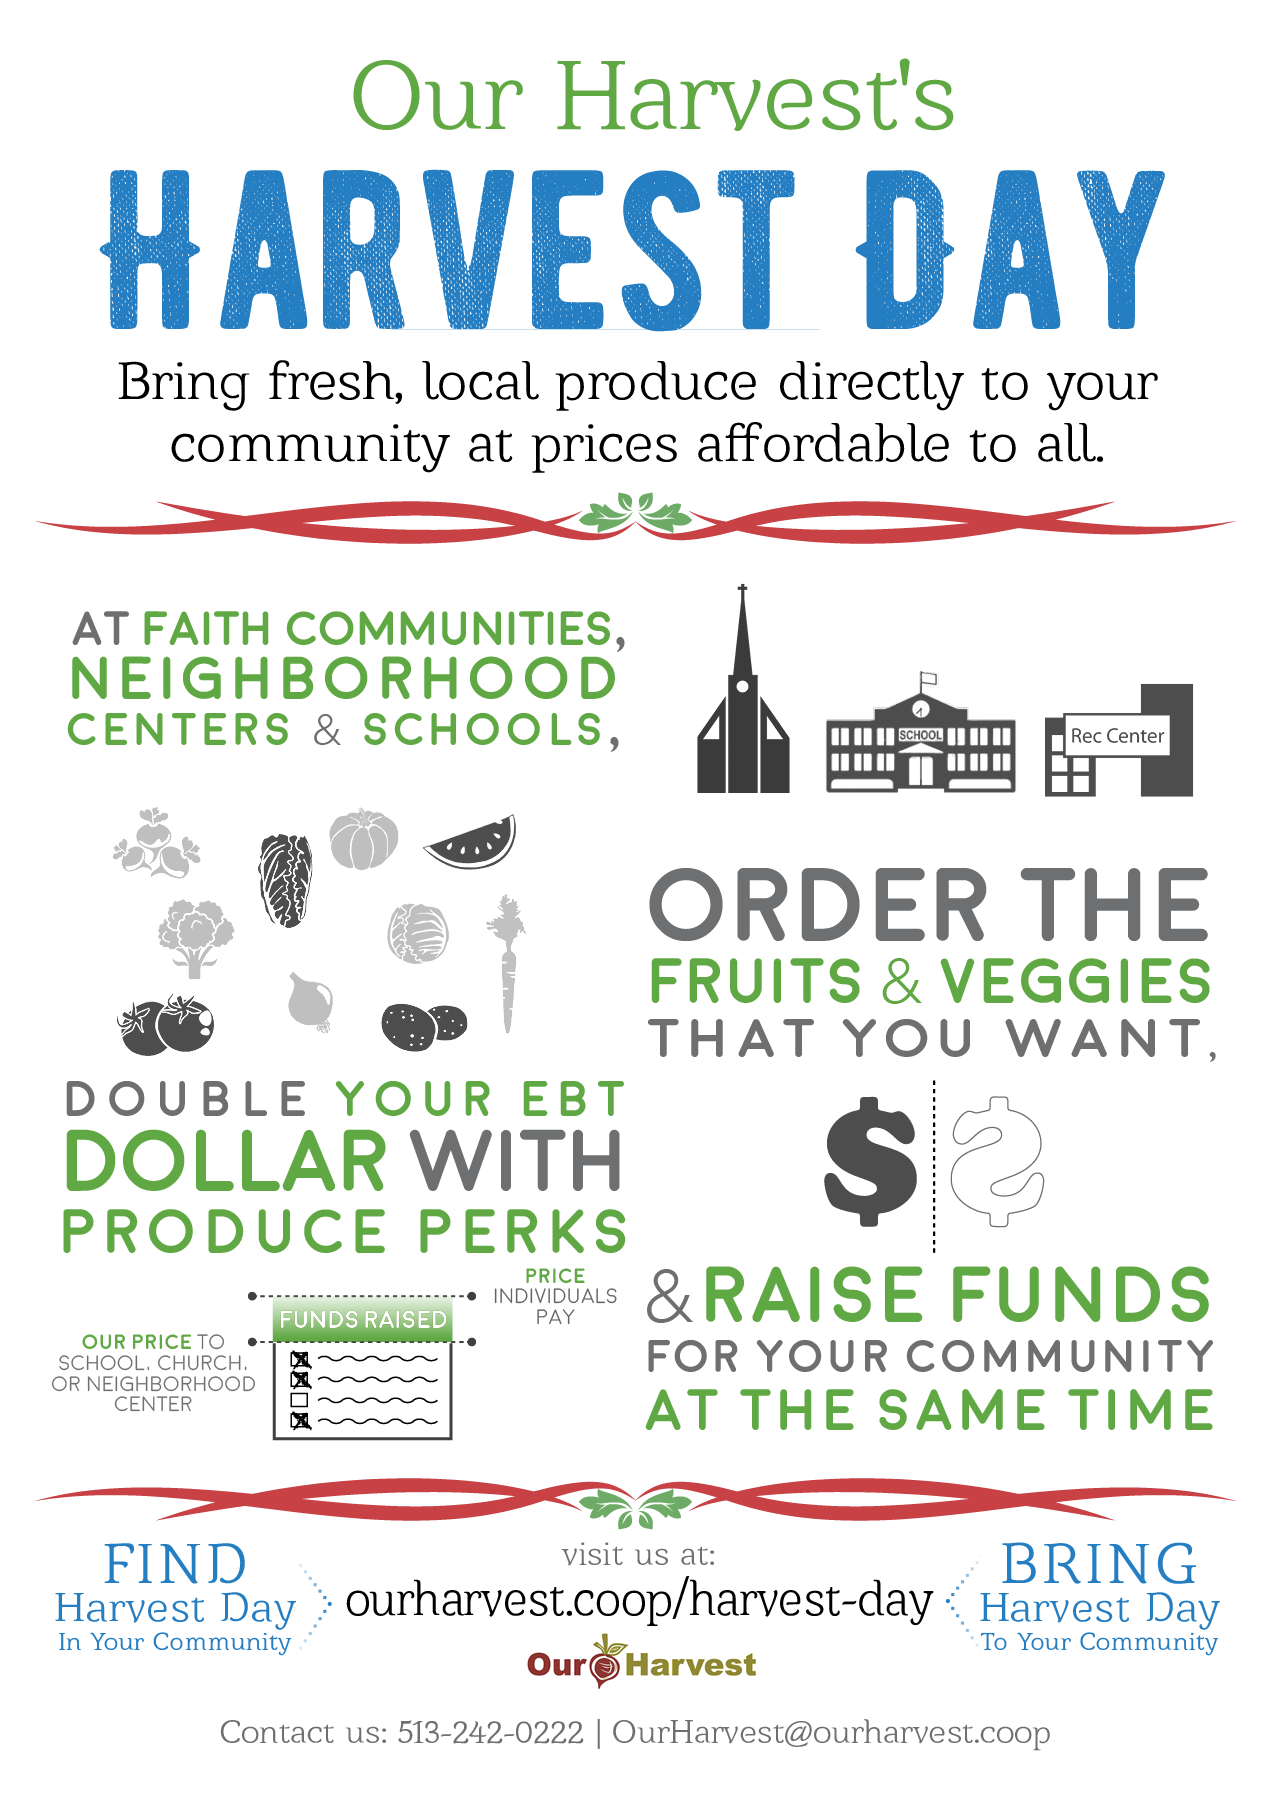 Learn more about the program with this flyer or visit Our Harvest's  Harvest Day  page!